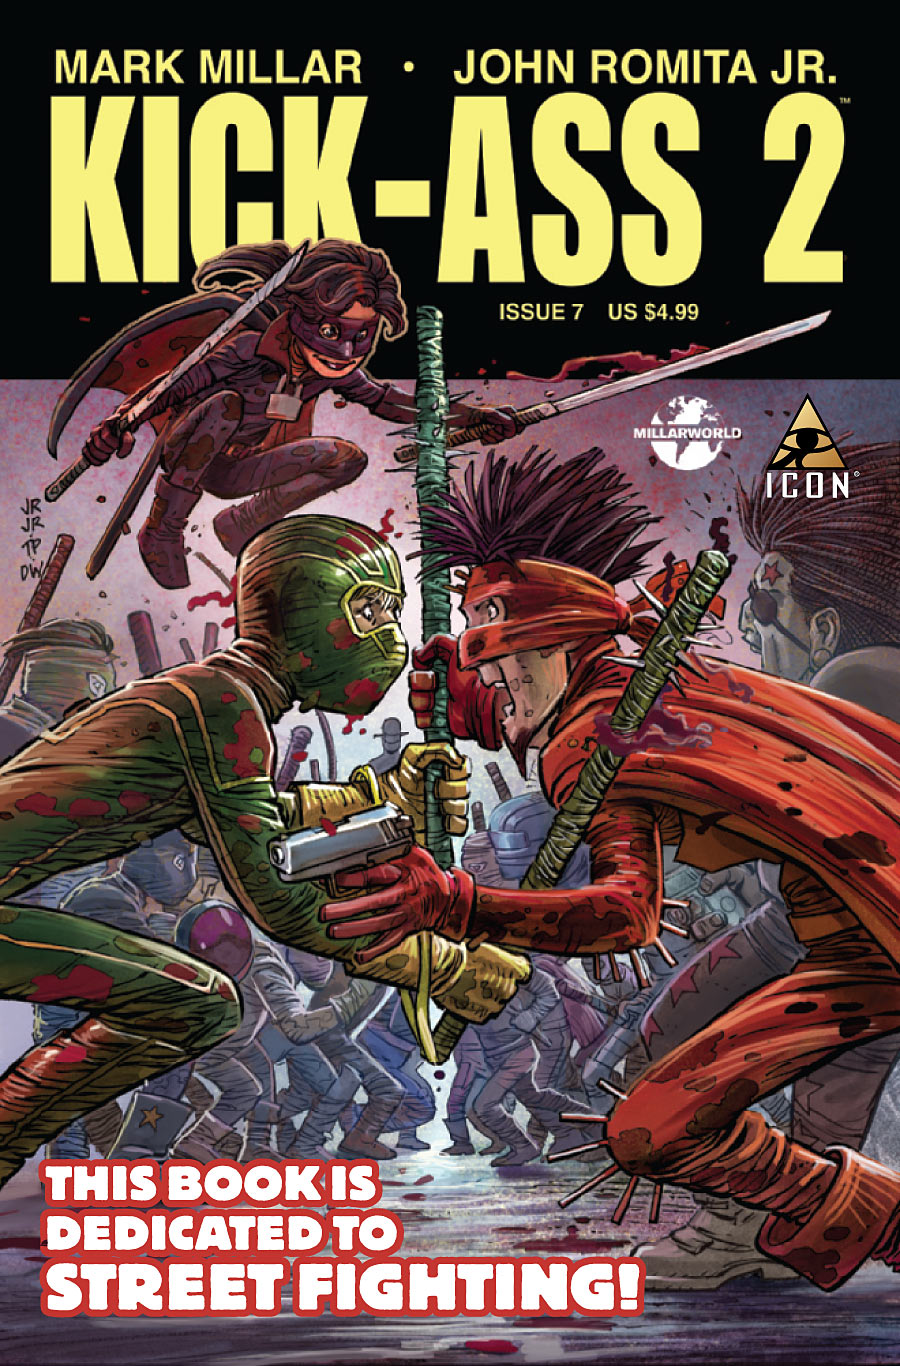 Kickass Volume 2 Issue 7 by Mark Millar and John Romita Jr.